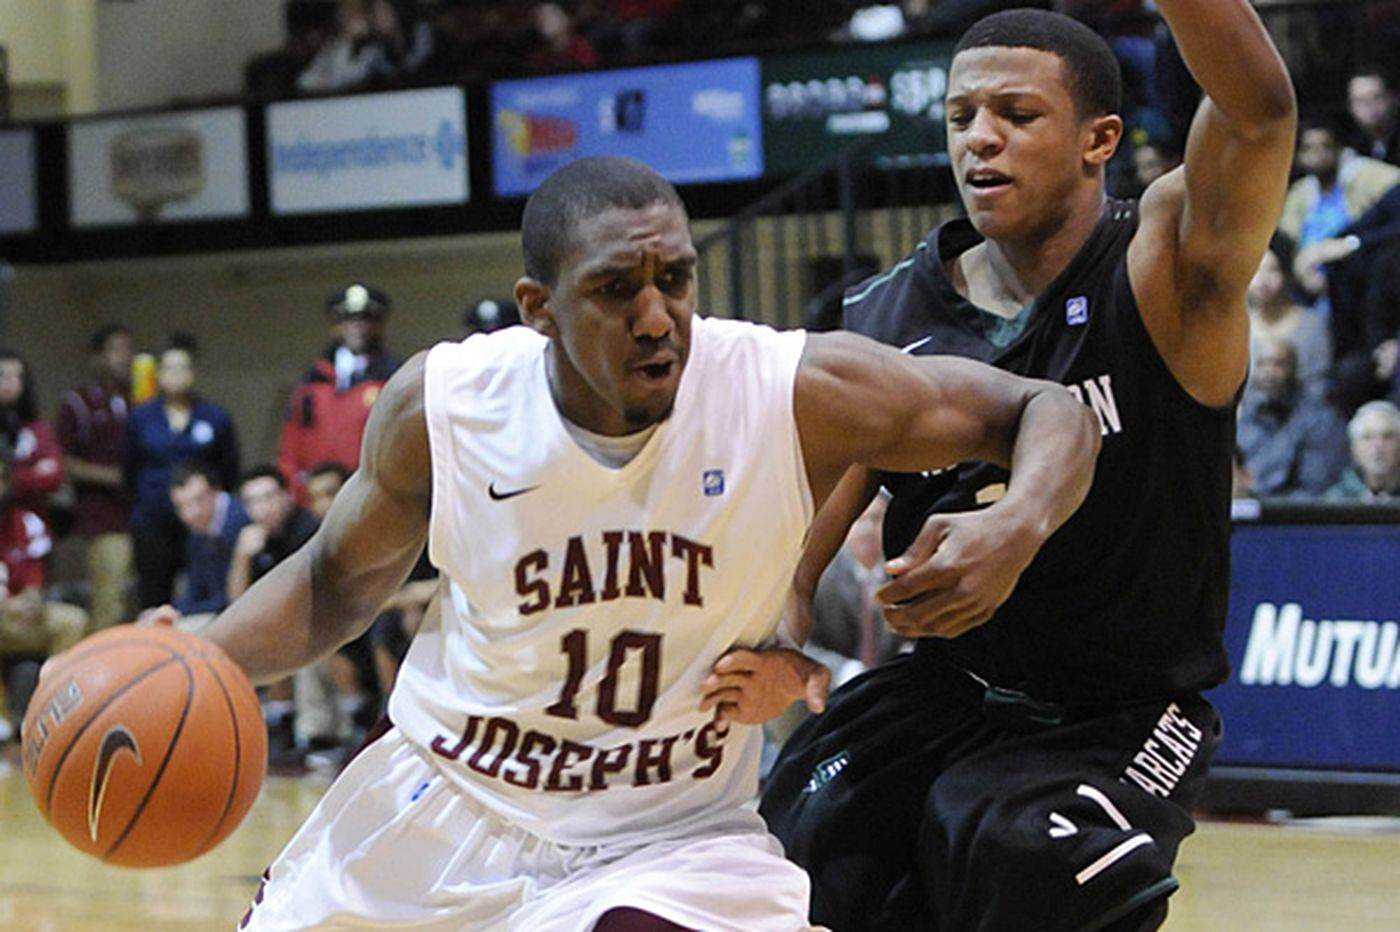 St. Joe's blasts Binghamton for 4th straight win